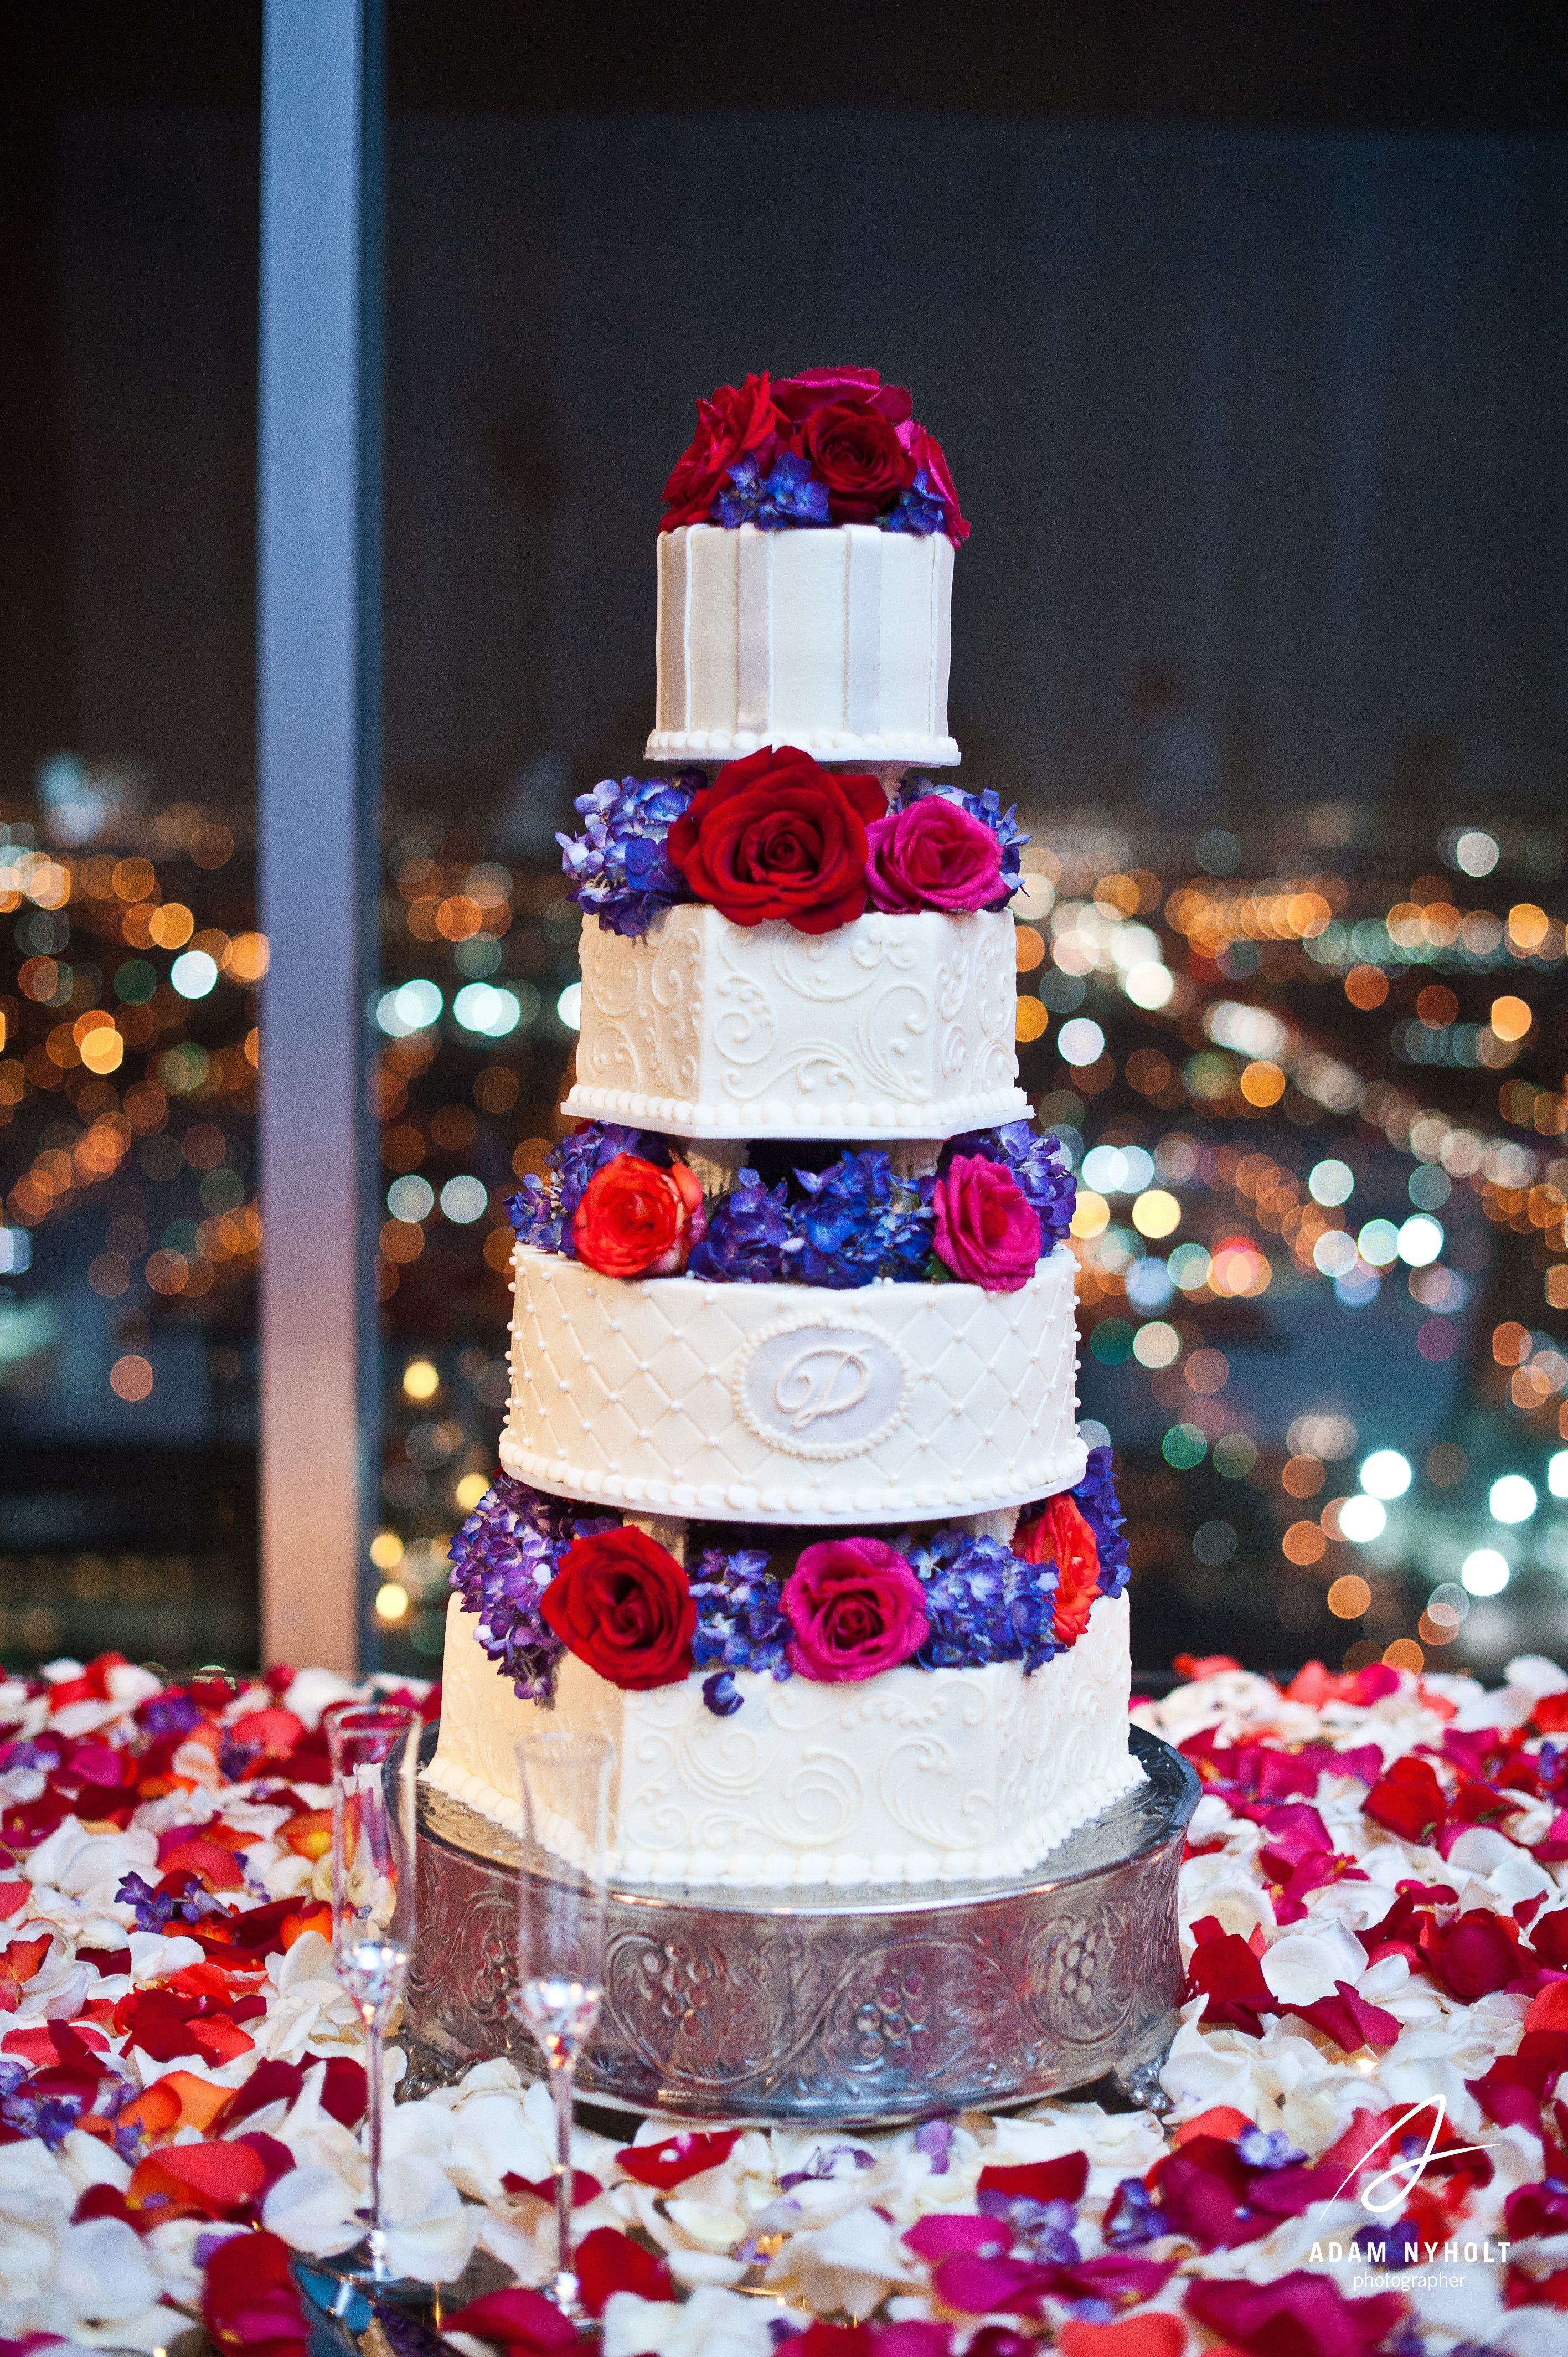 Gorgeous Wedding Cake With Red And Purple Flowers Photography By